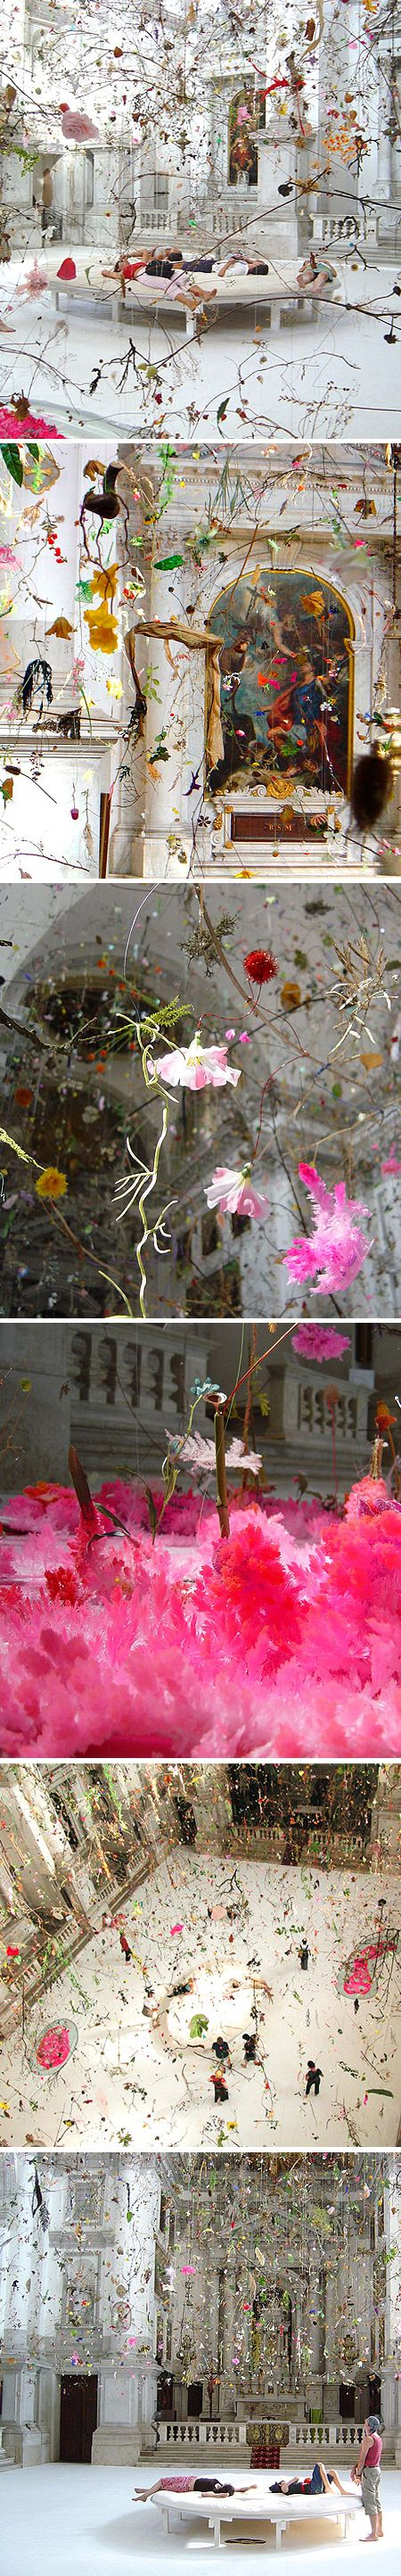 Falling Garden installation by Gerda Steiner and Jörg Lenzlinger. -Oh my word, this is lovely.